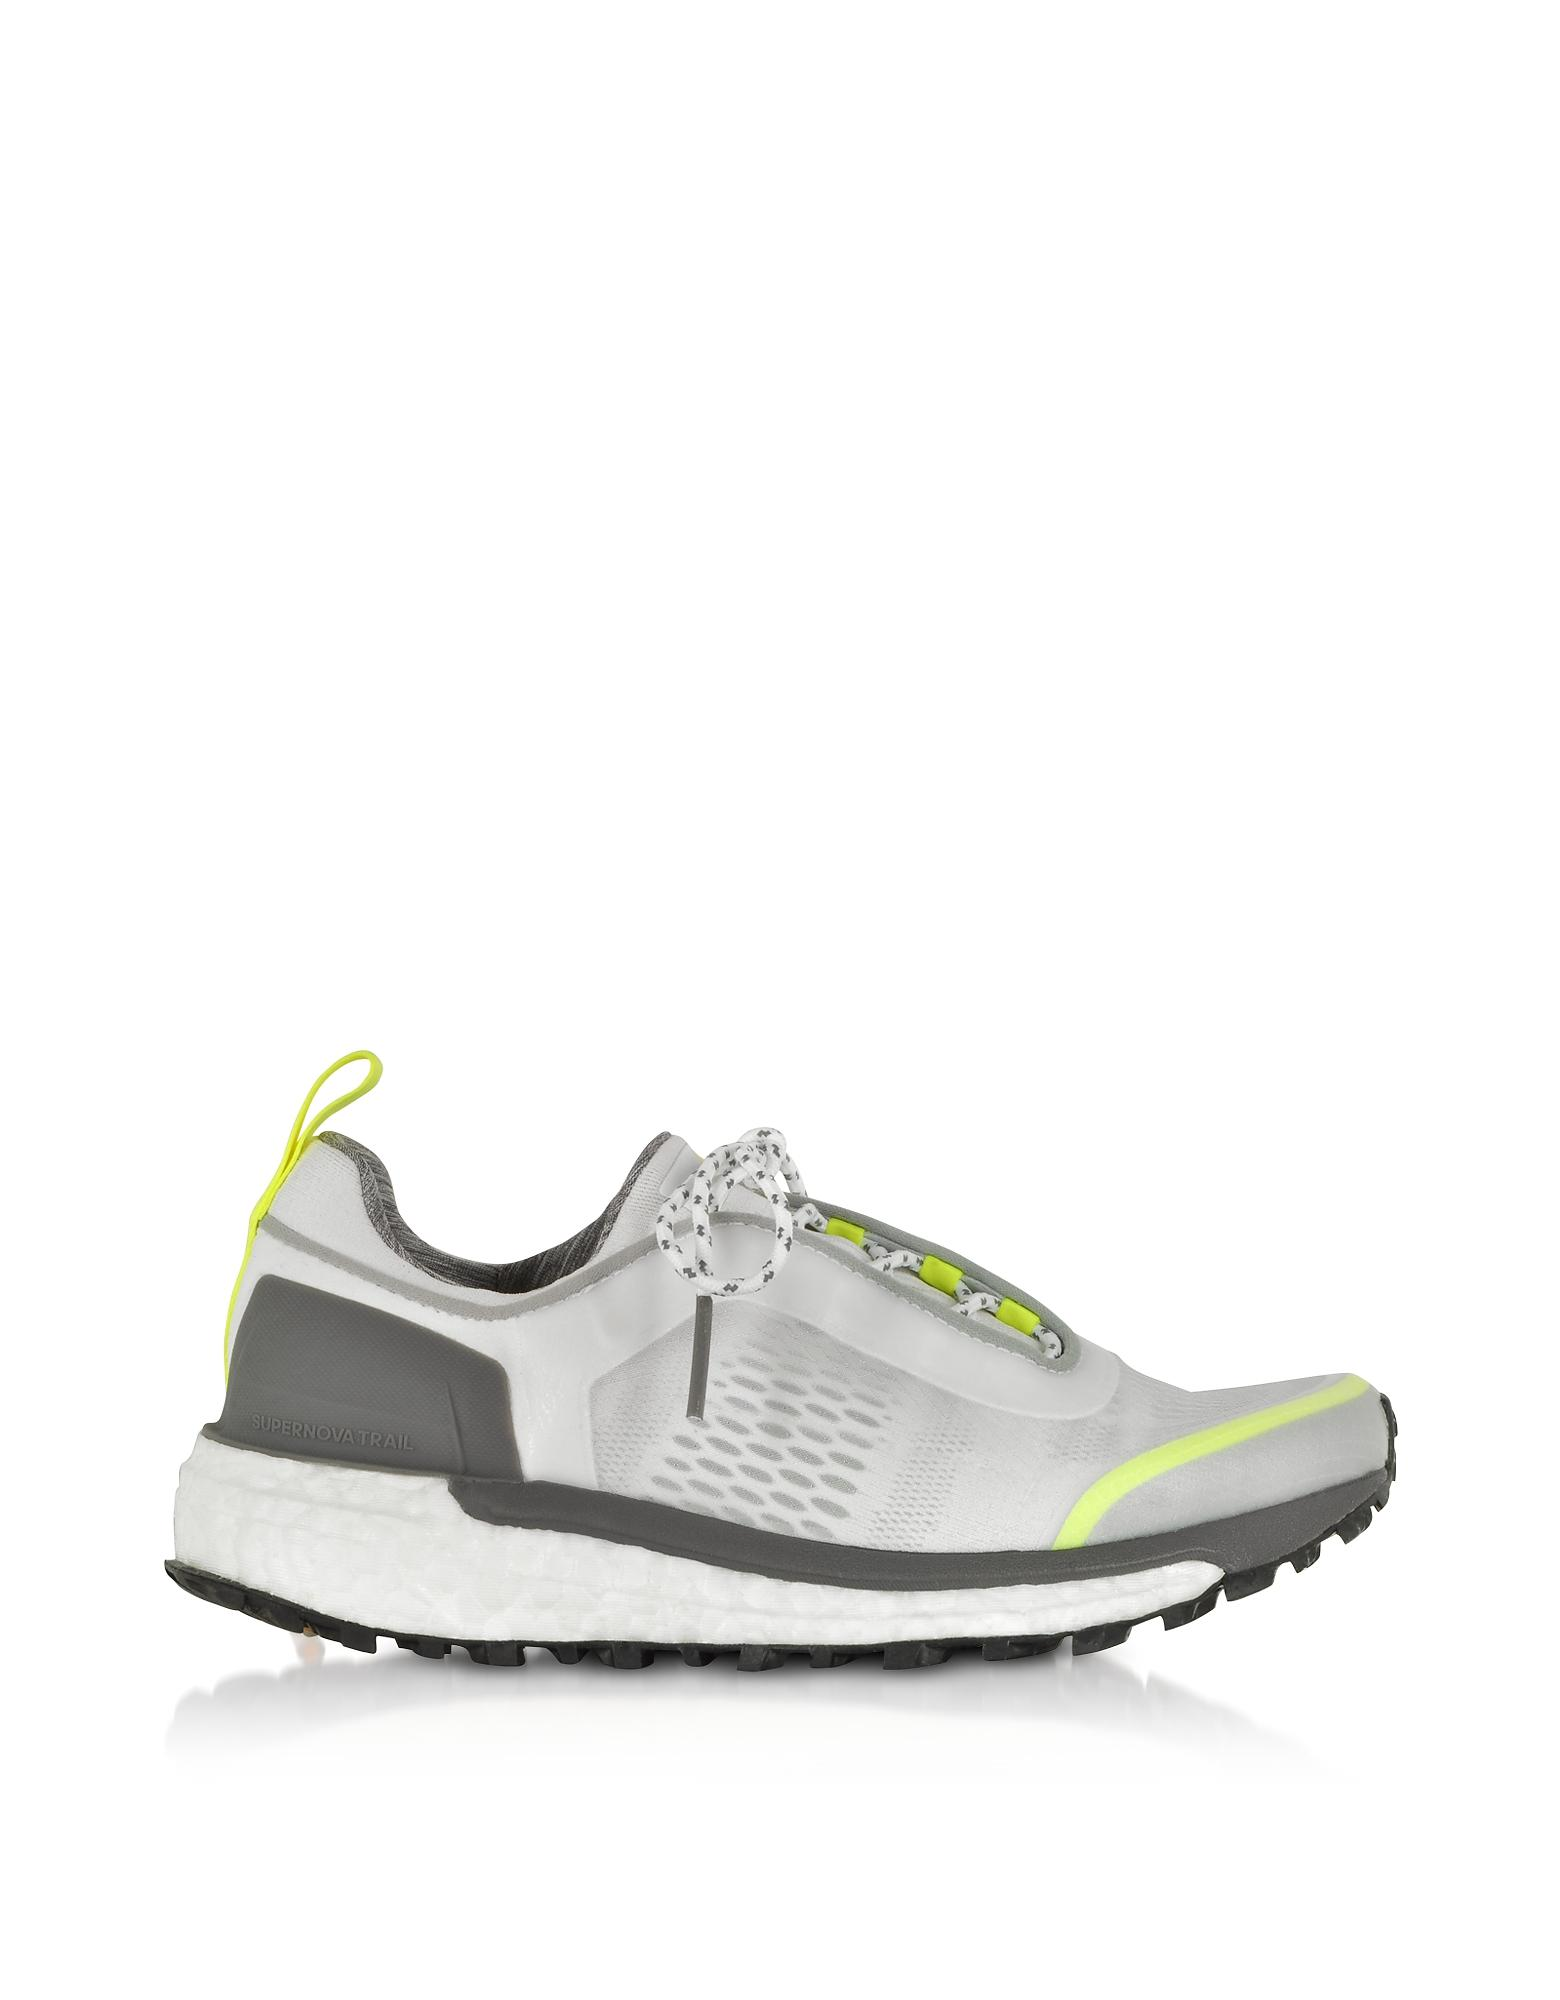 b5f10ce5a Adidas By Stella McCartney - White Solar Yellow Supernova Trail Sneakers -  Lyst. View fullscreen